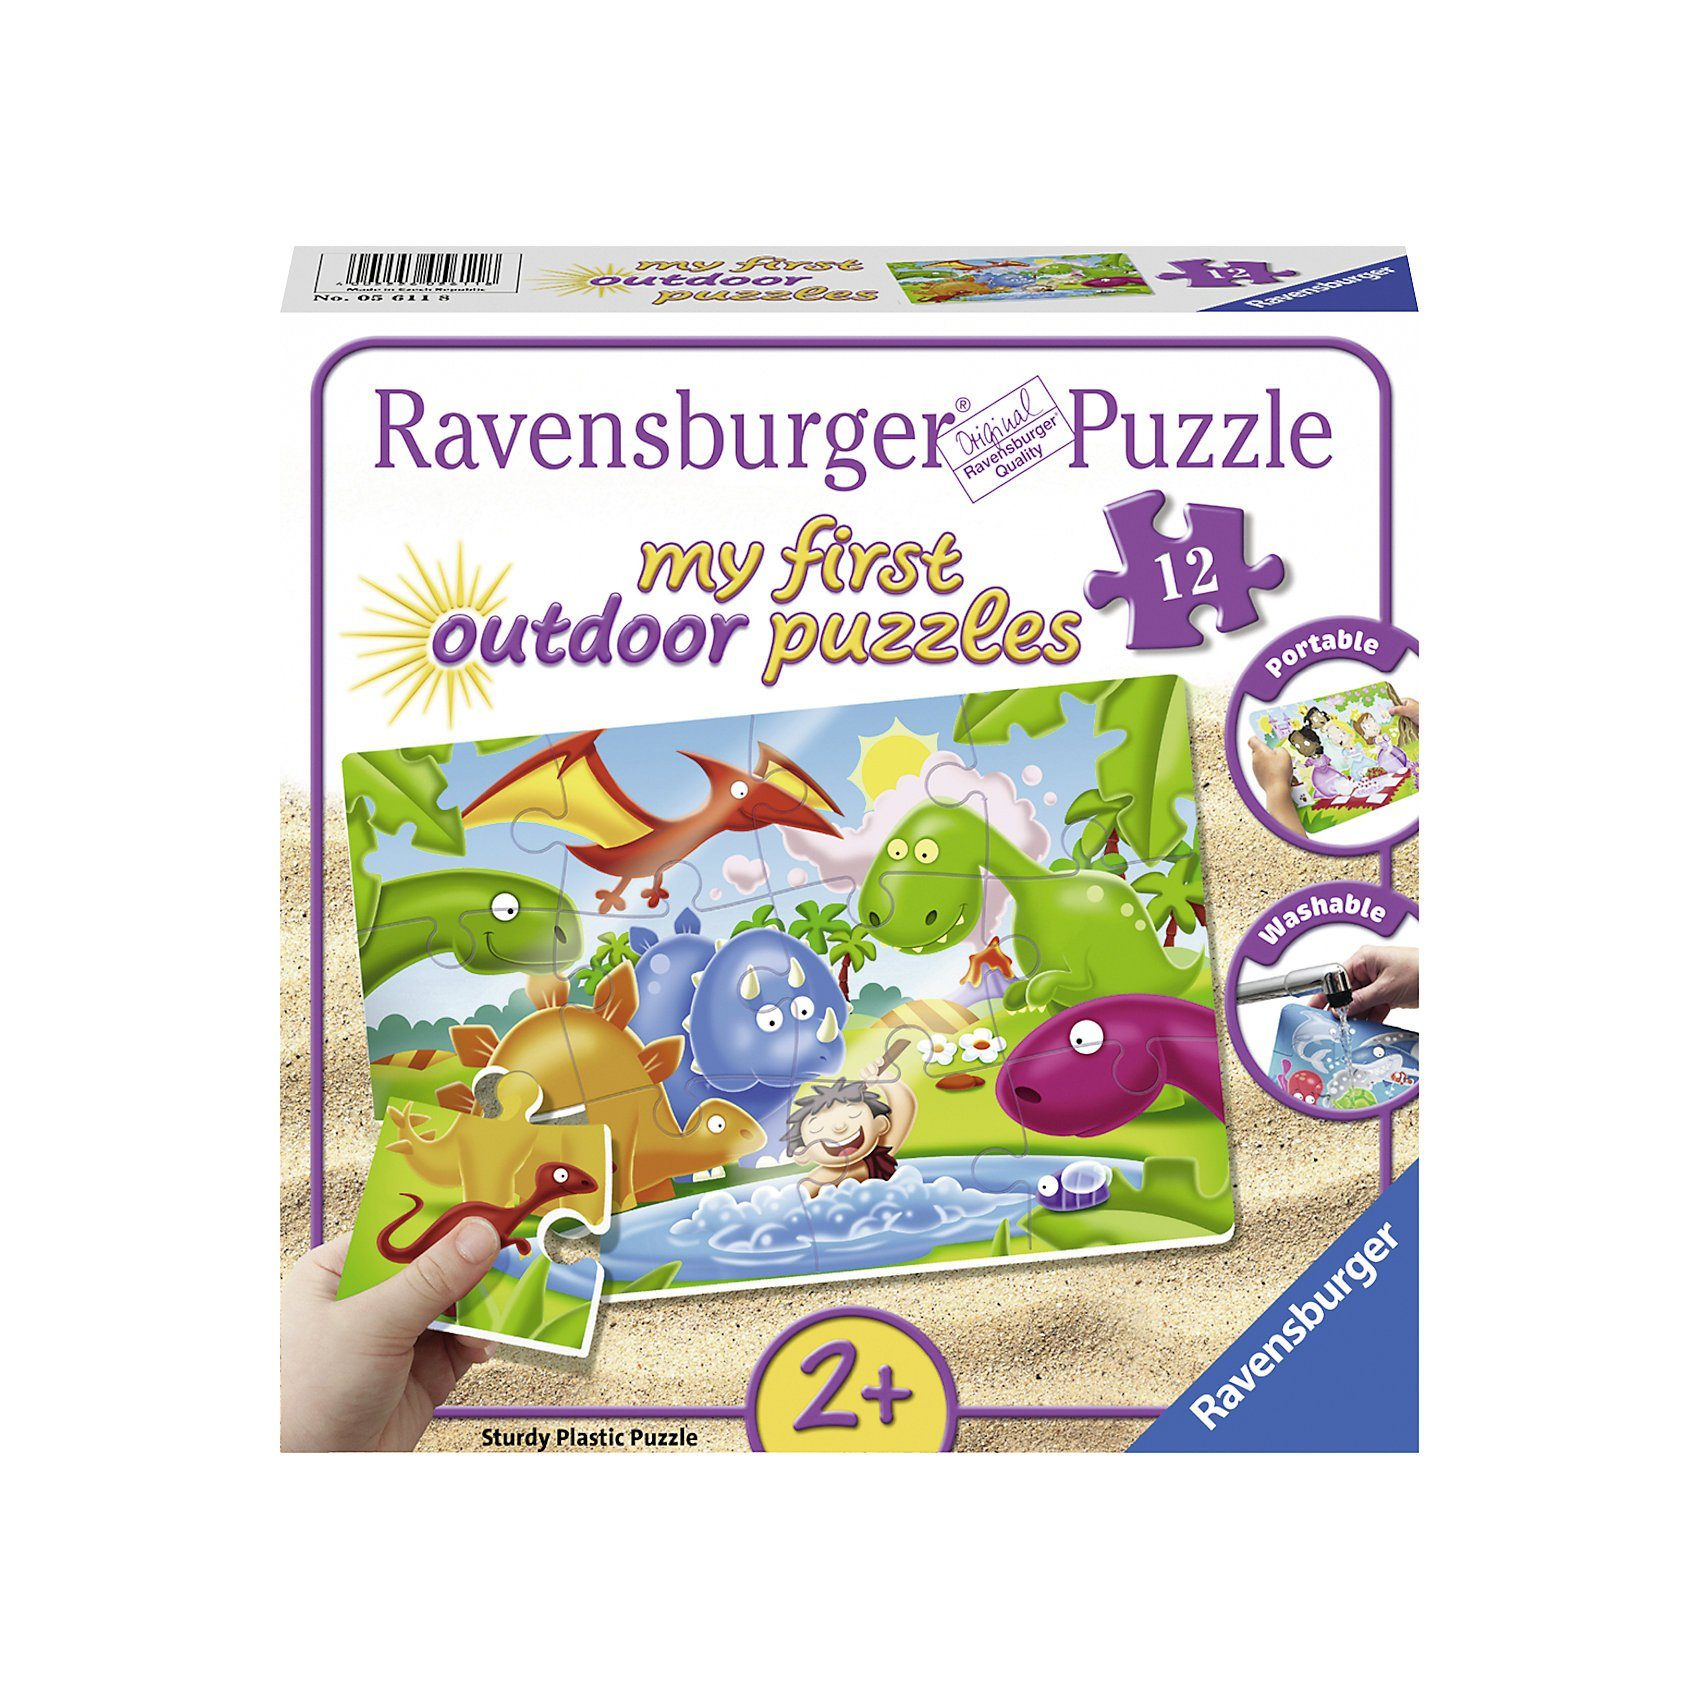 Ravensburger my first Outdoor-Puzzle, 12 Teile, 26x18 cm, Dinosaurier Fre